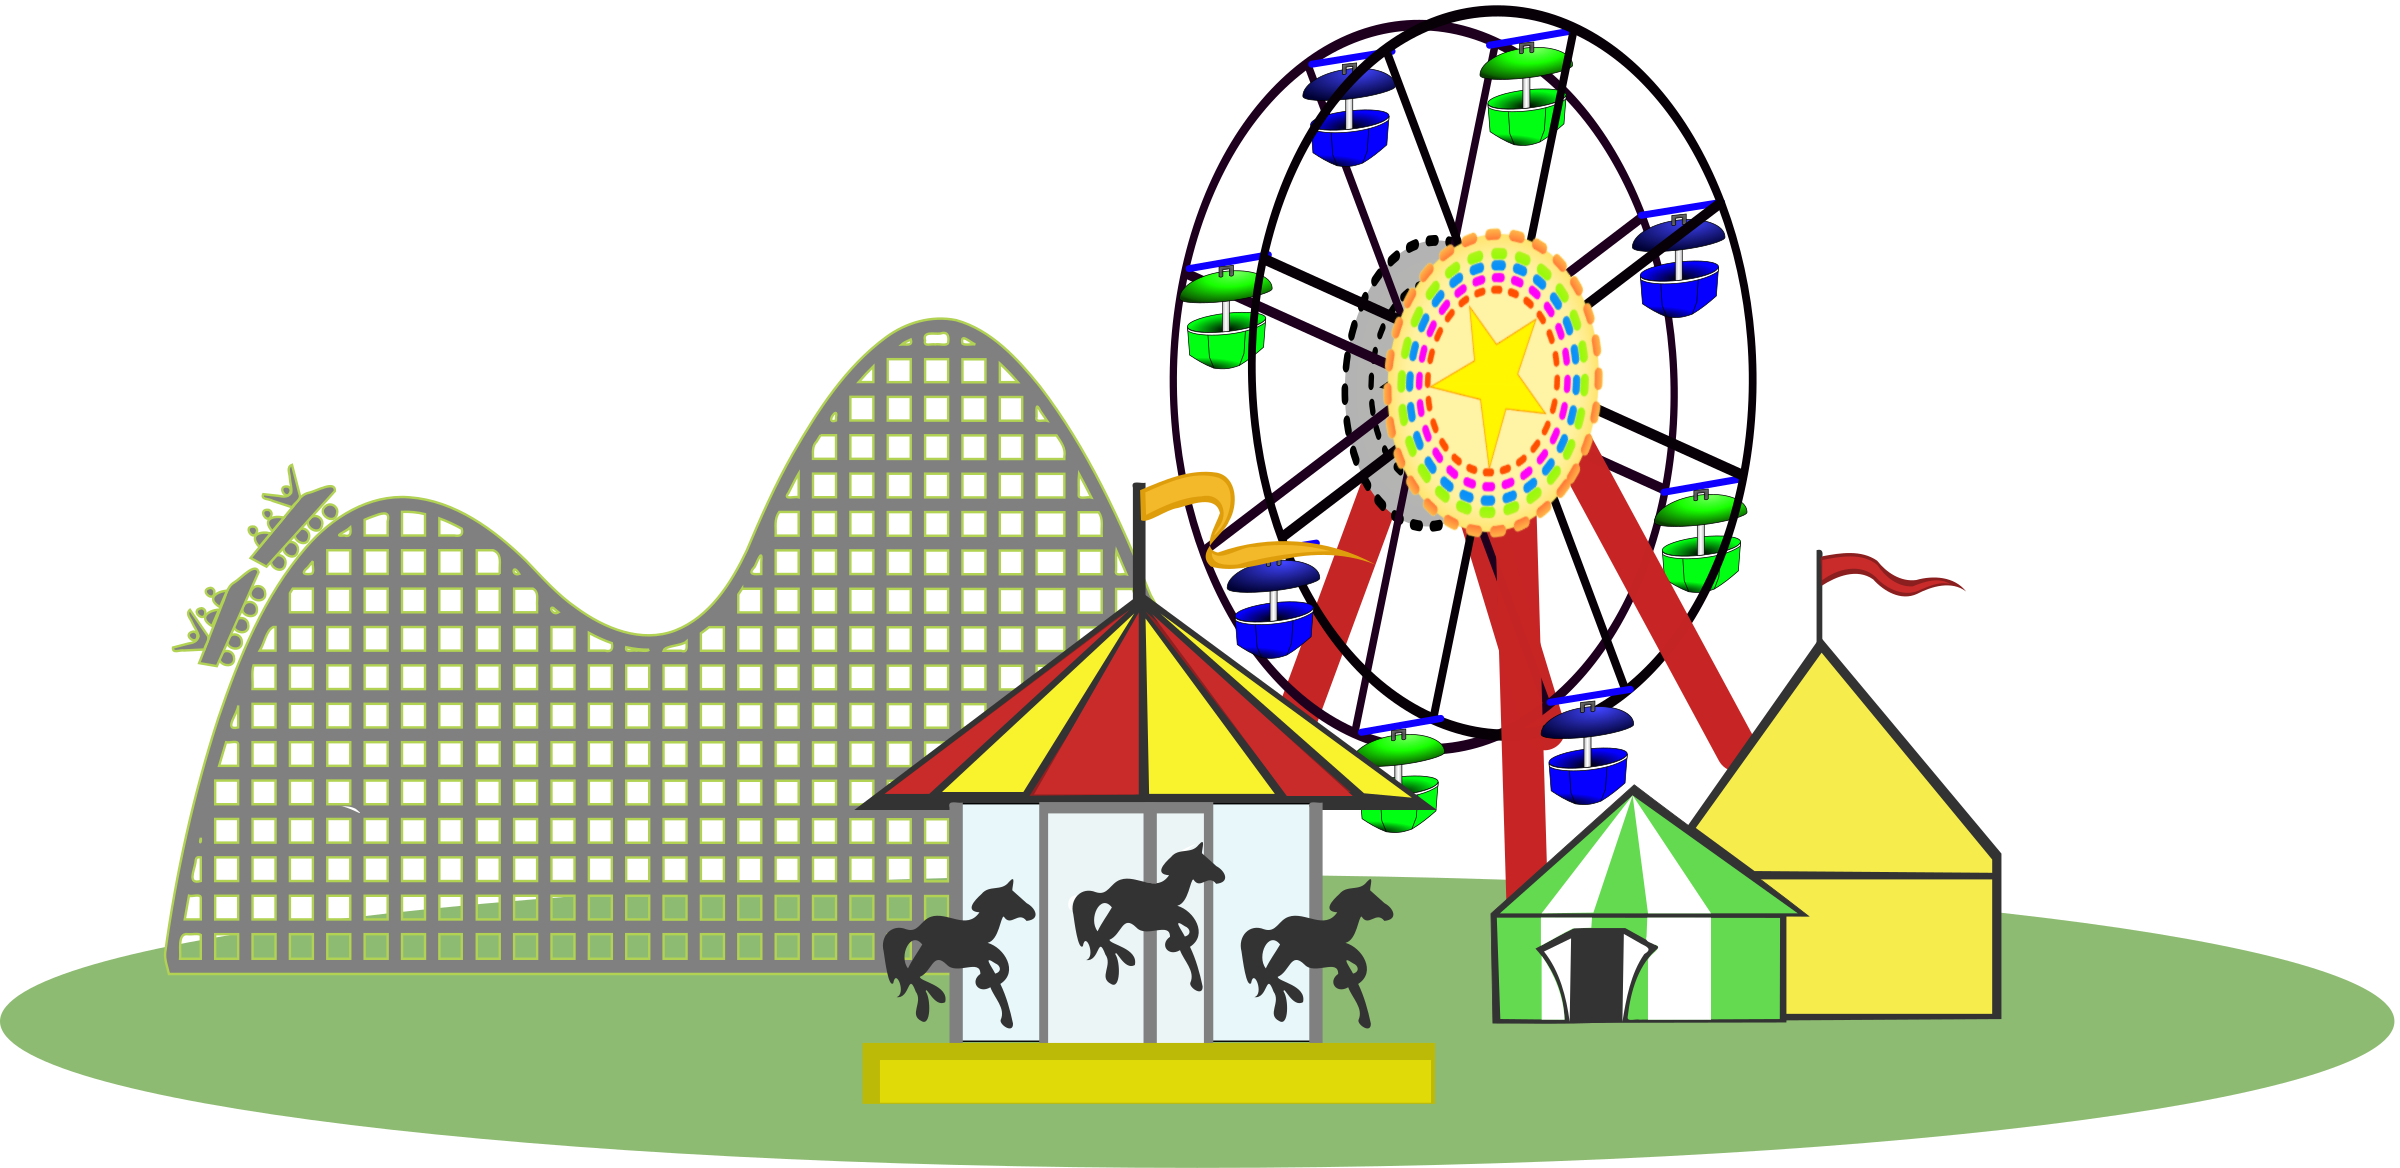 Carneval clipart roller coaster Wide Clipart Color Remix Version